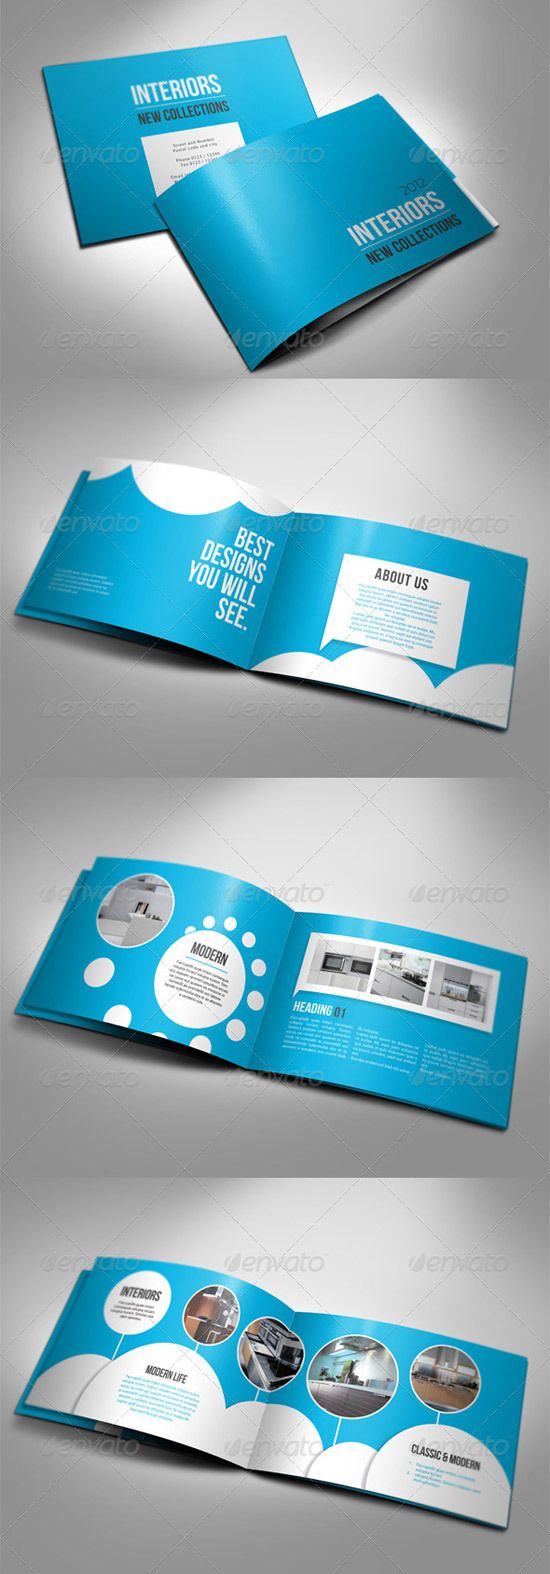 free booklet template - Ideal.vistalist.co